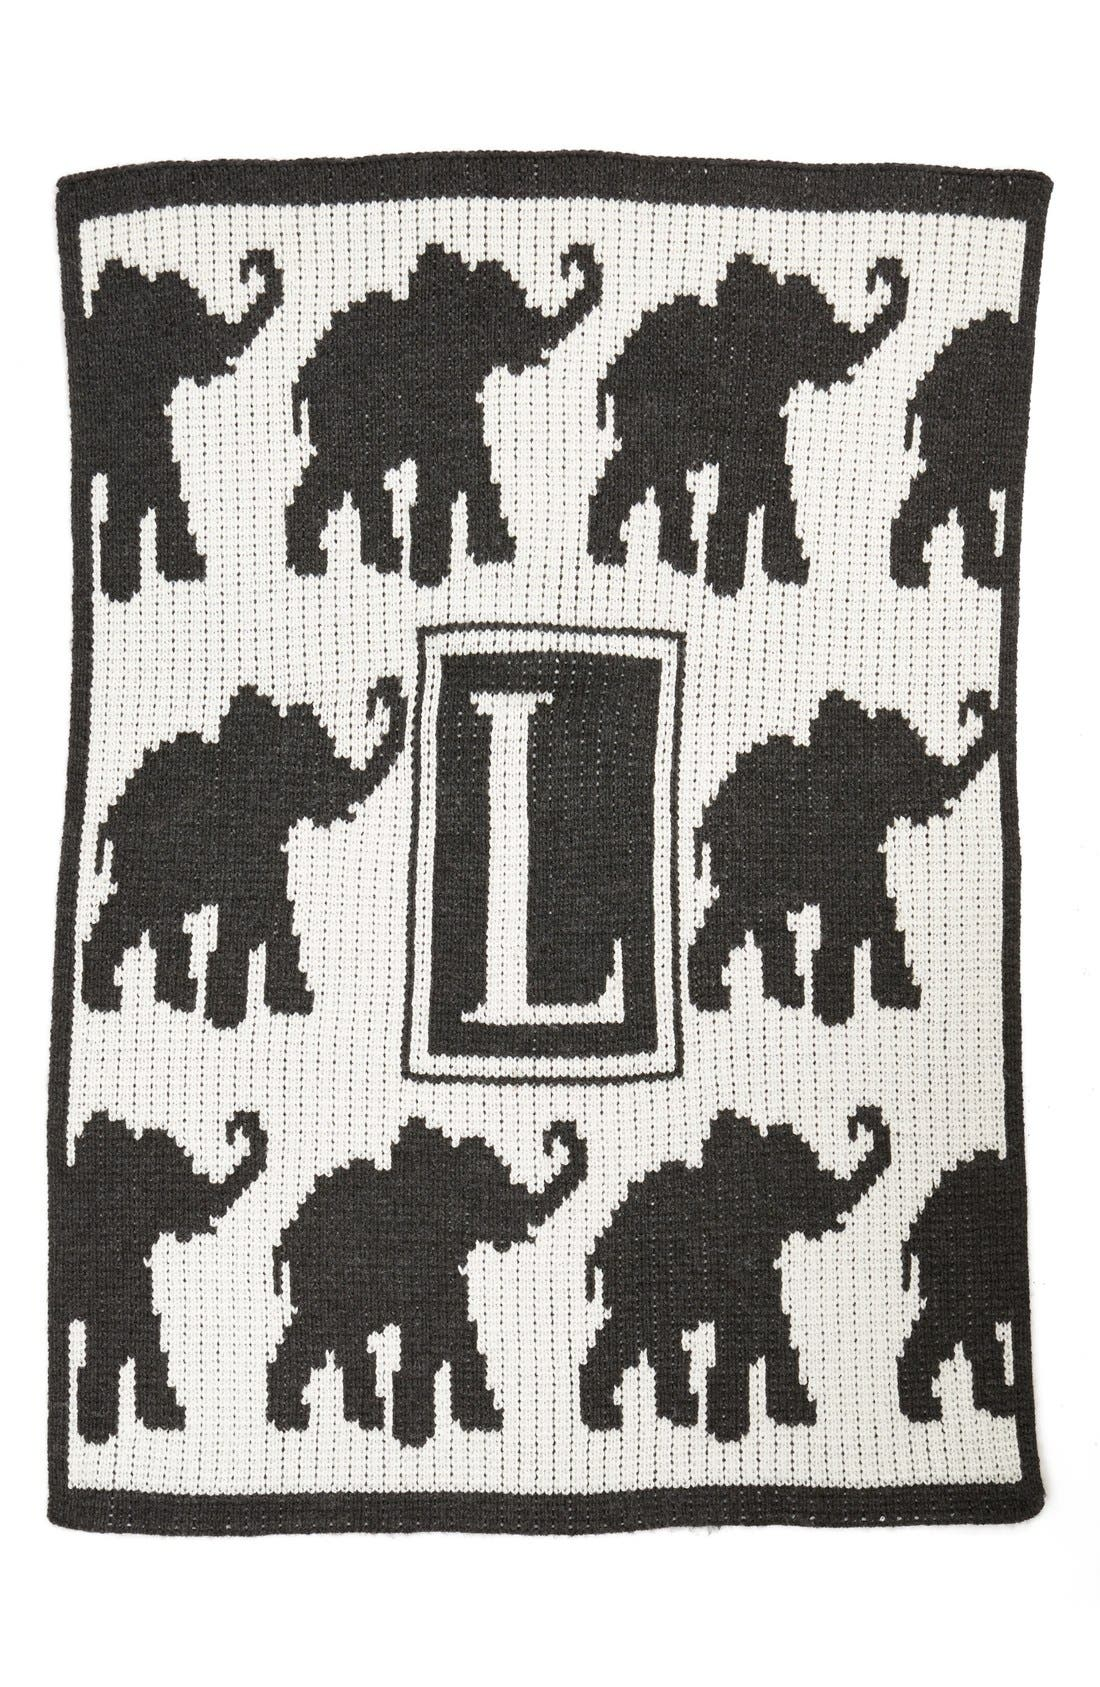 Alternate Image 1 Selected - Butterscotch Blankees 'Walking Elephants - Small' Personalized Blanket